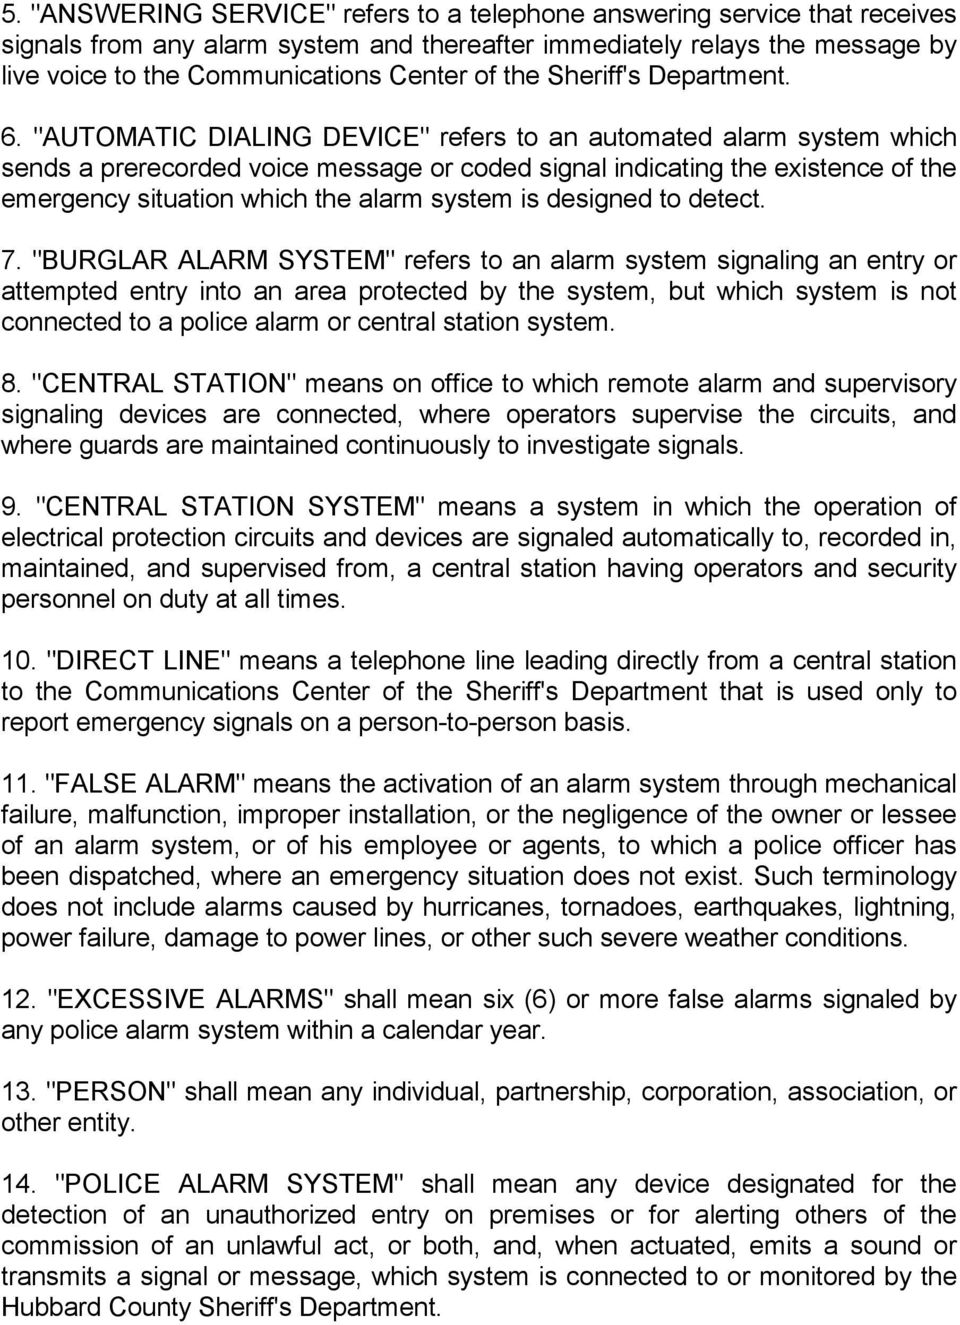 """AUTOMATIC DIALING DEVICE"" refers to an automated alarm system which sends a prerecorded voice message or coded signal indicating the existence of the emergency situation which the alarm system is"